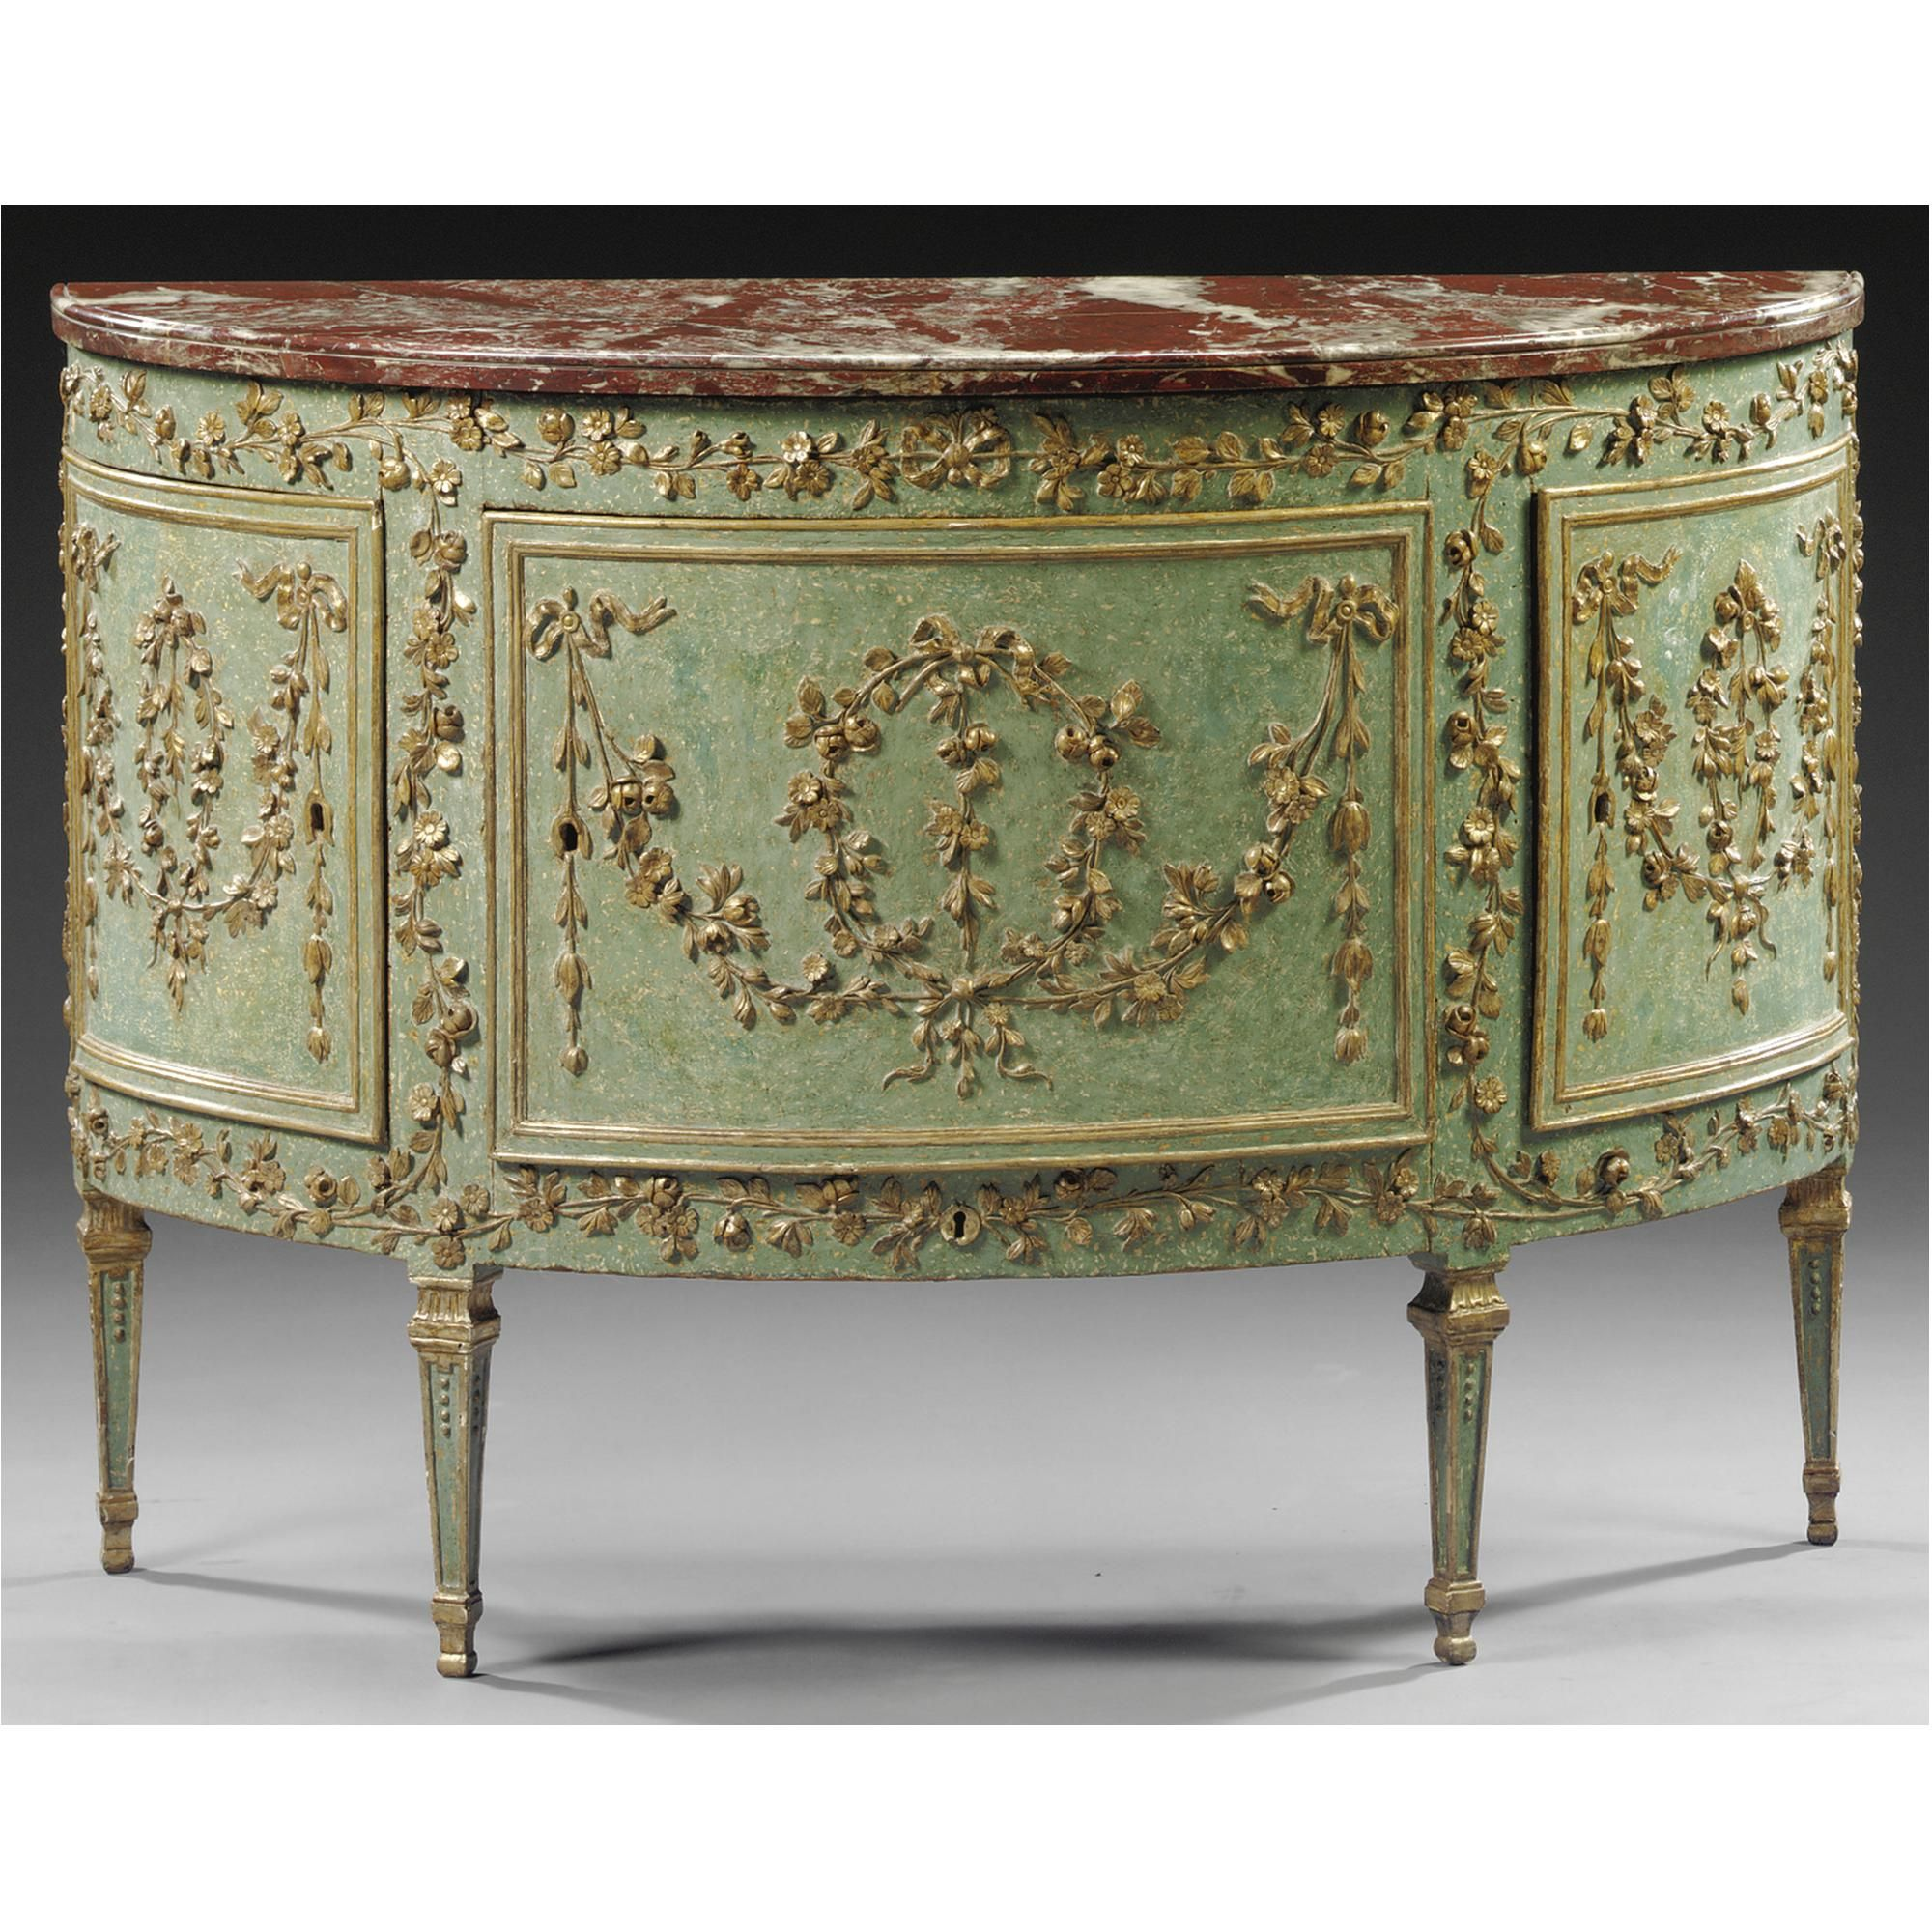 Muebles Italianos Clasicos A Piedmontese Demi Lune Carved And Painted Wood Commode